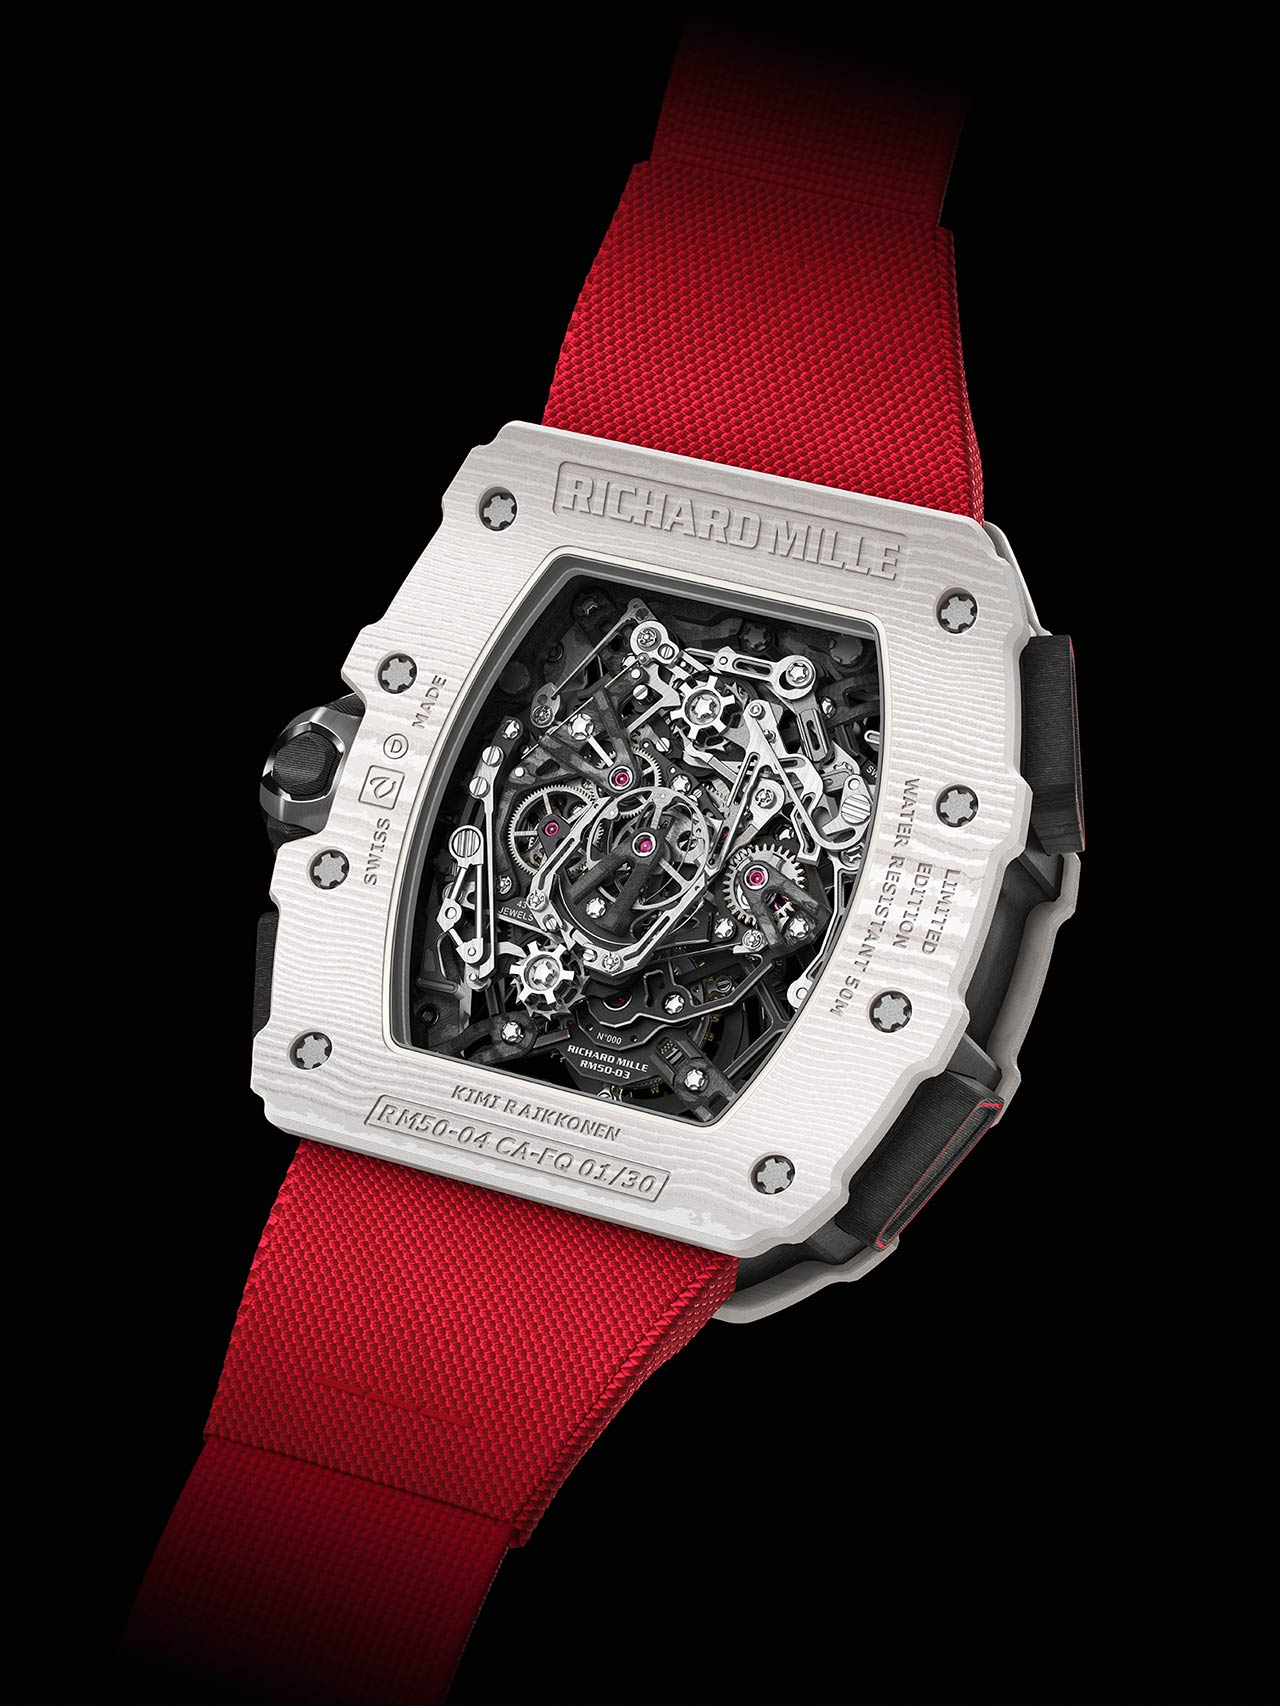 Introducing Richard Mille Rm 50 04 Tourbillon Split